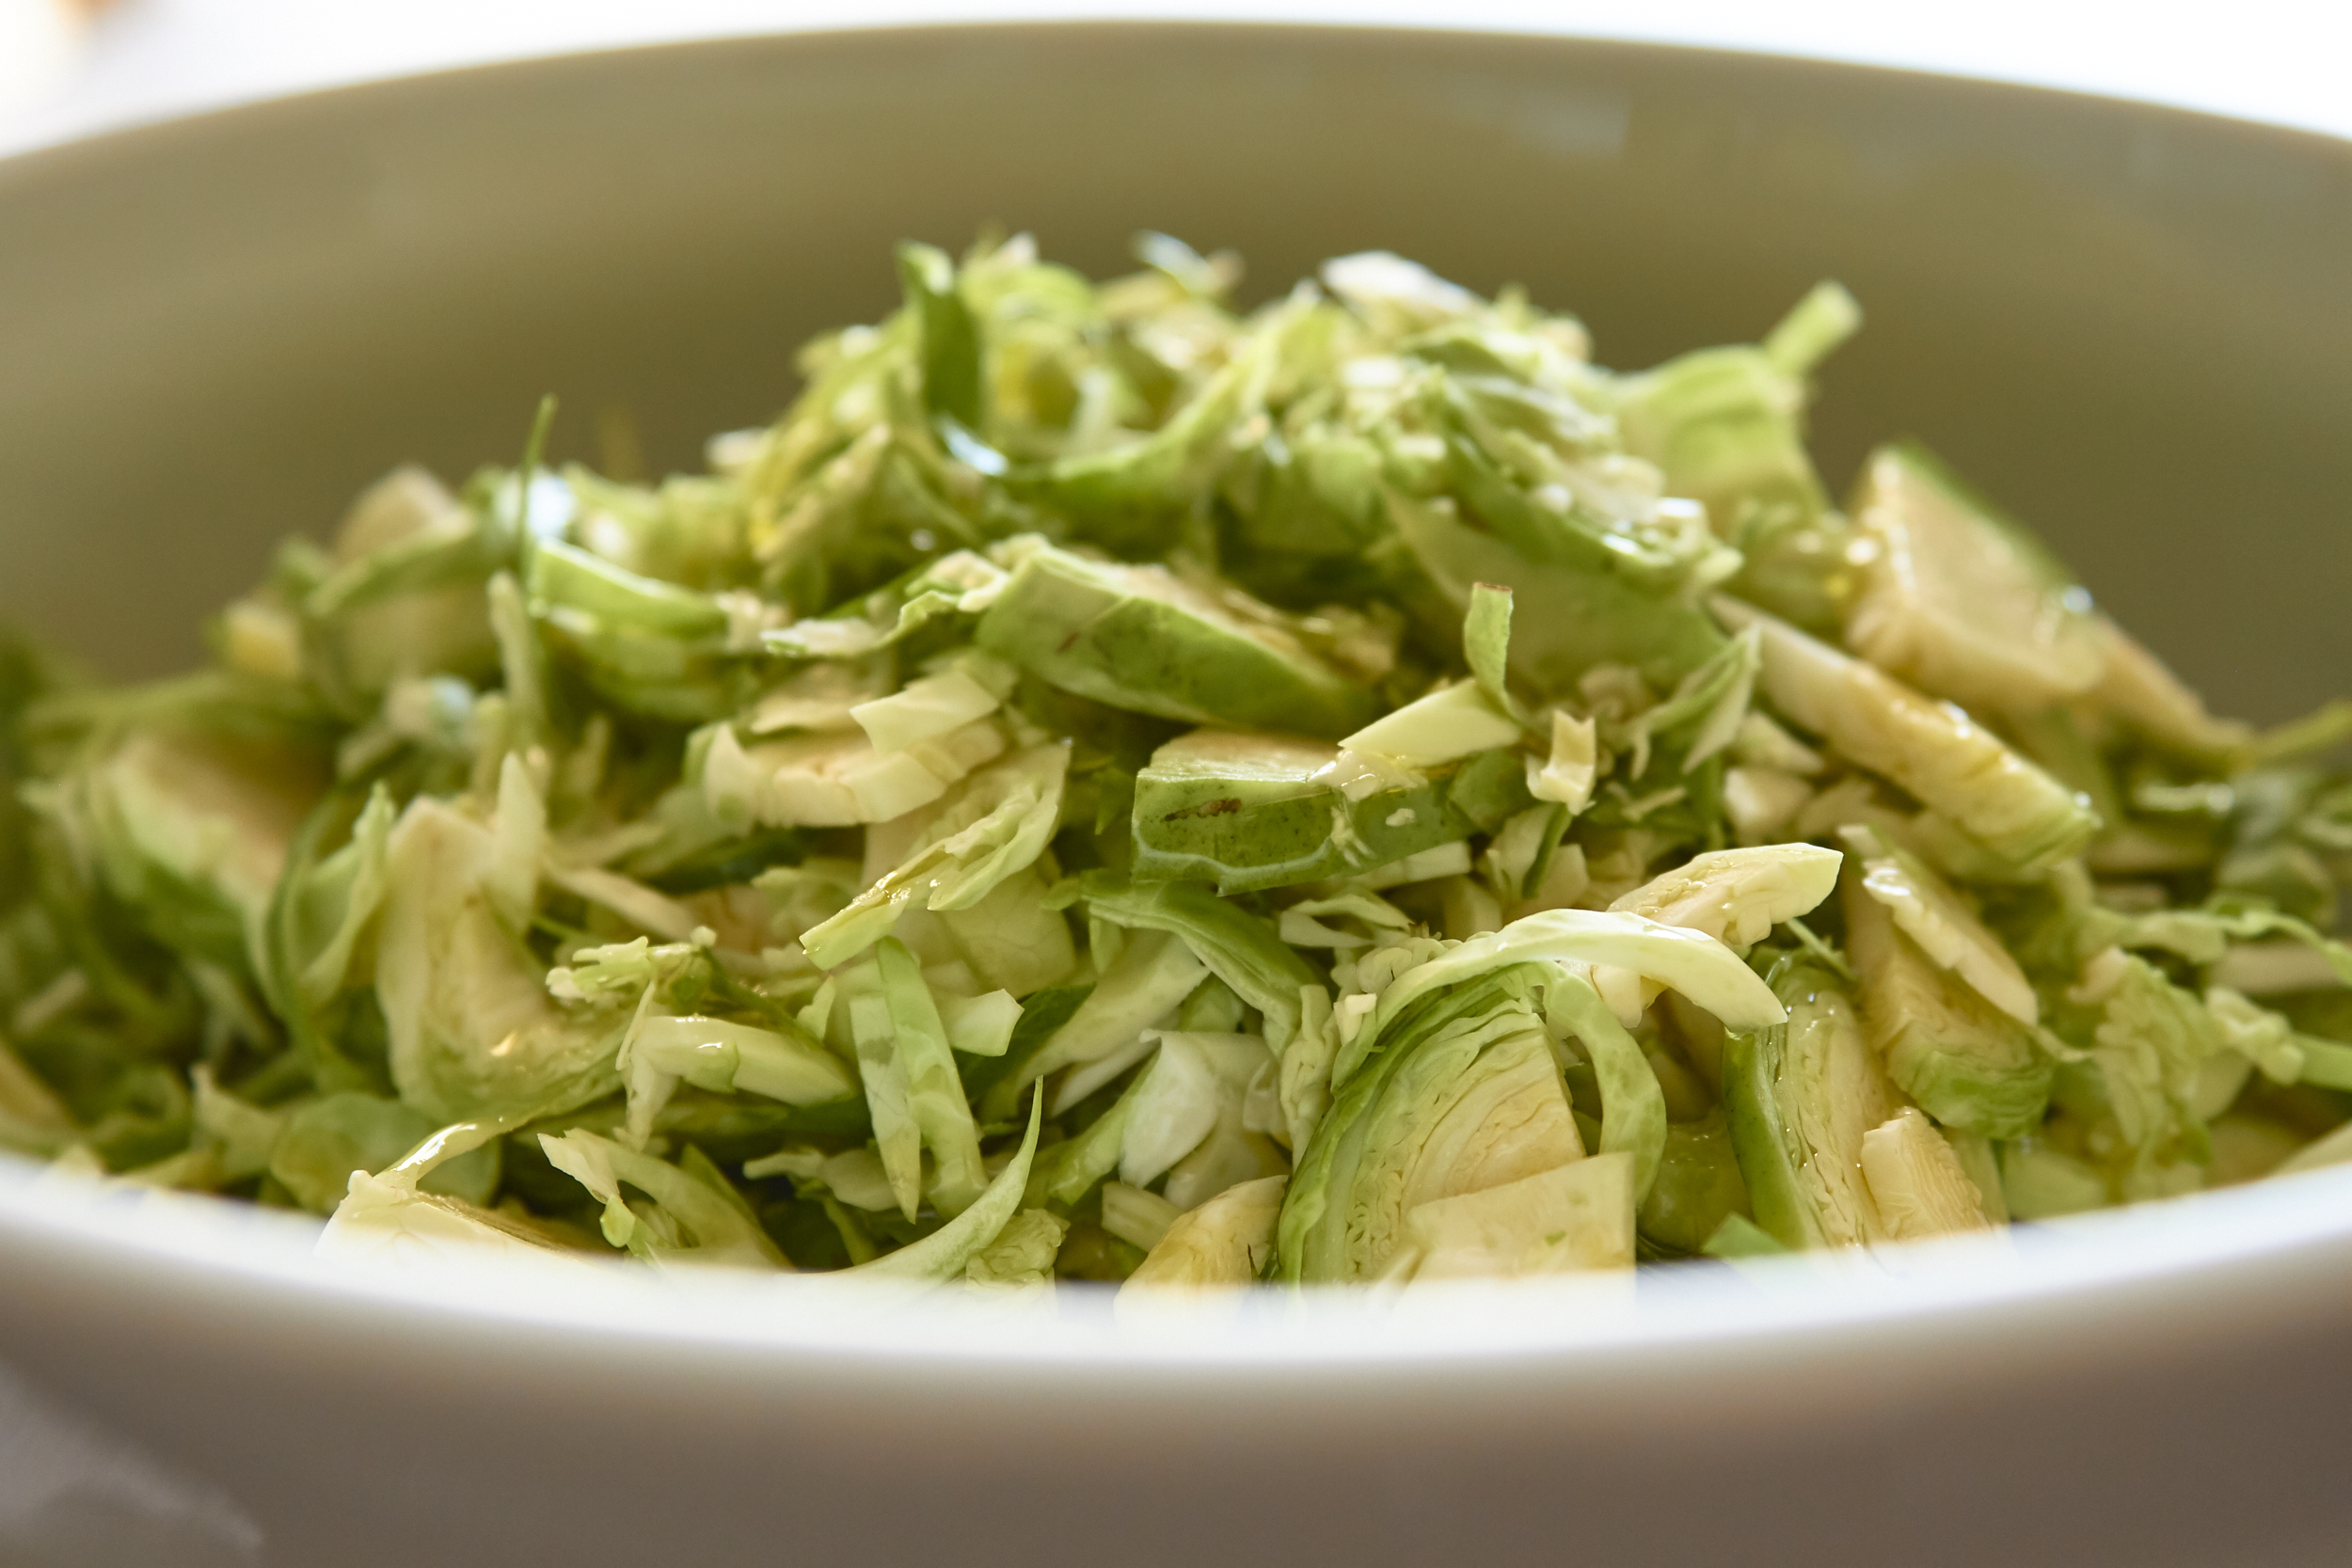 Brussels Sprout Salad - a closer look at the chopped sprouts | In Carina's Kitchen